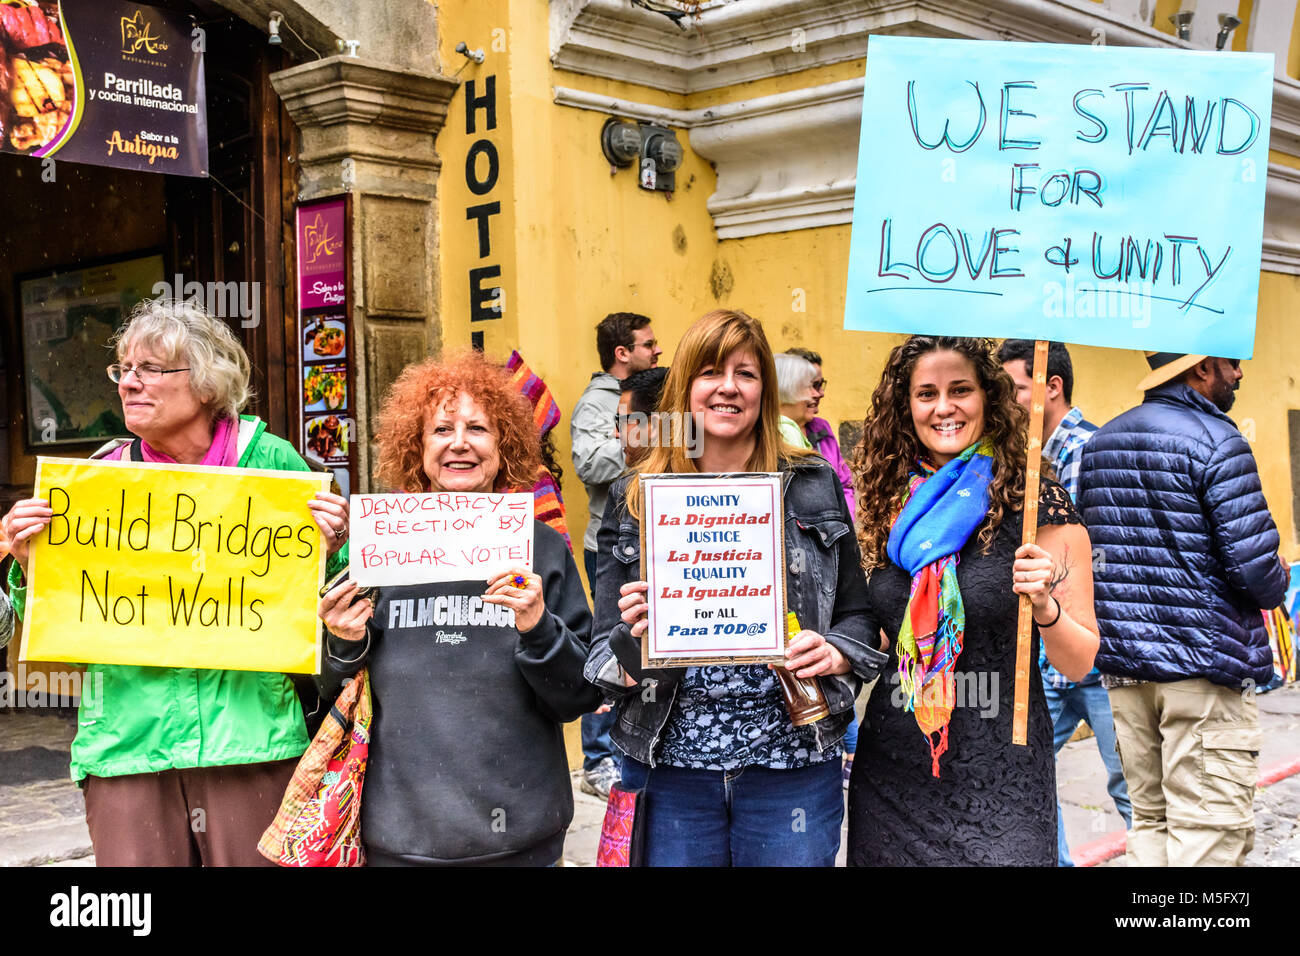 Antigua, Guatemala - January 21, 2017: Women hold signs in peaceful Women's March as part of global protest - Stock Image